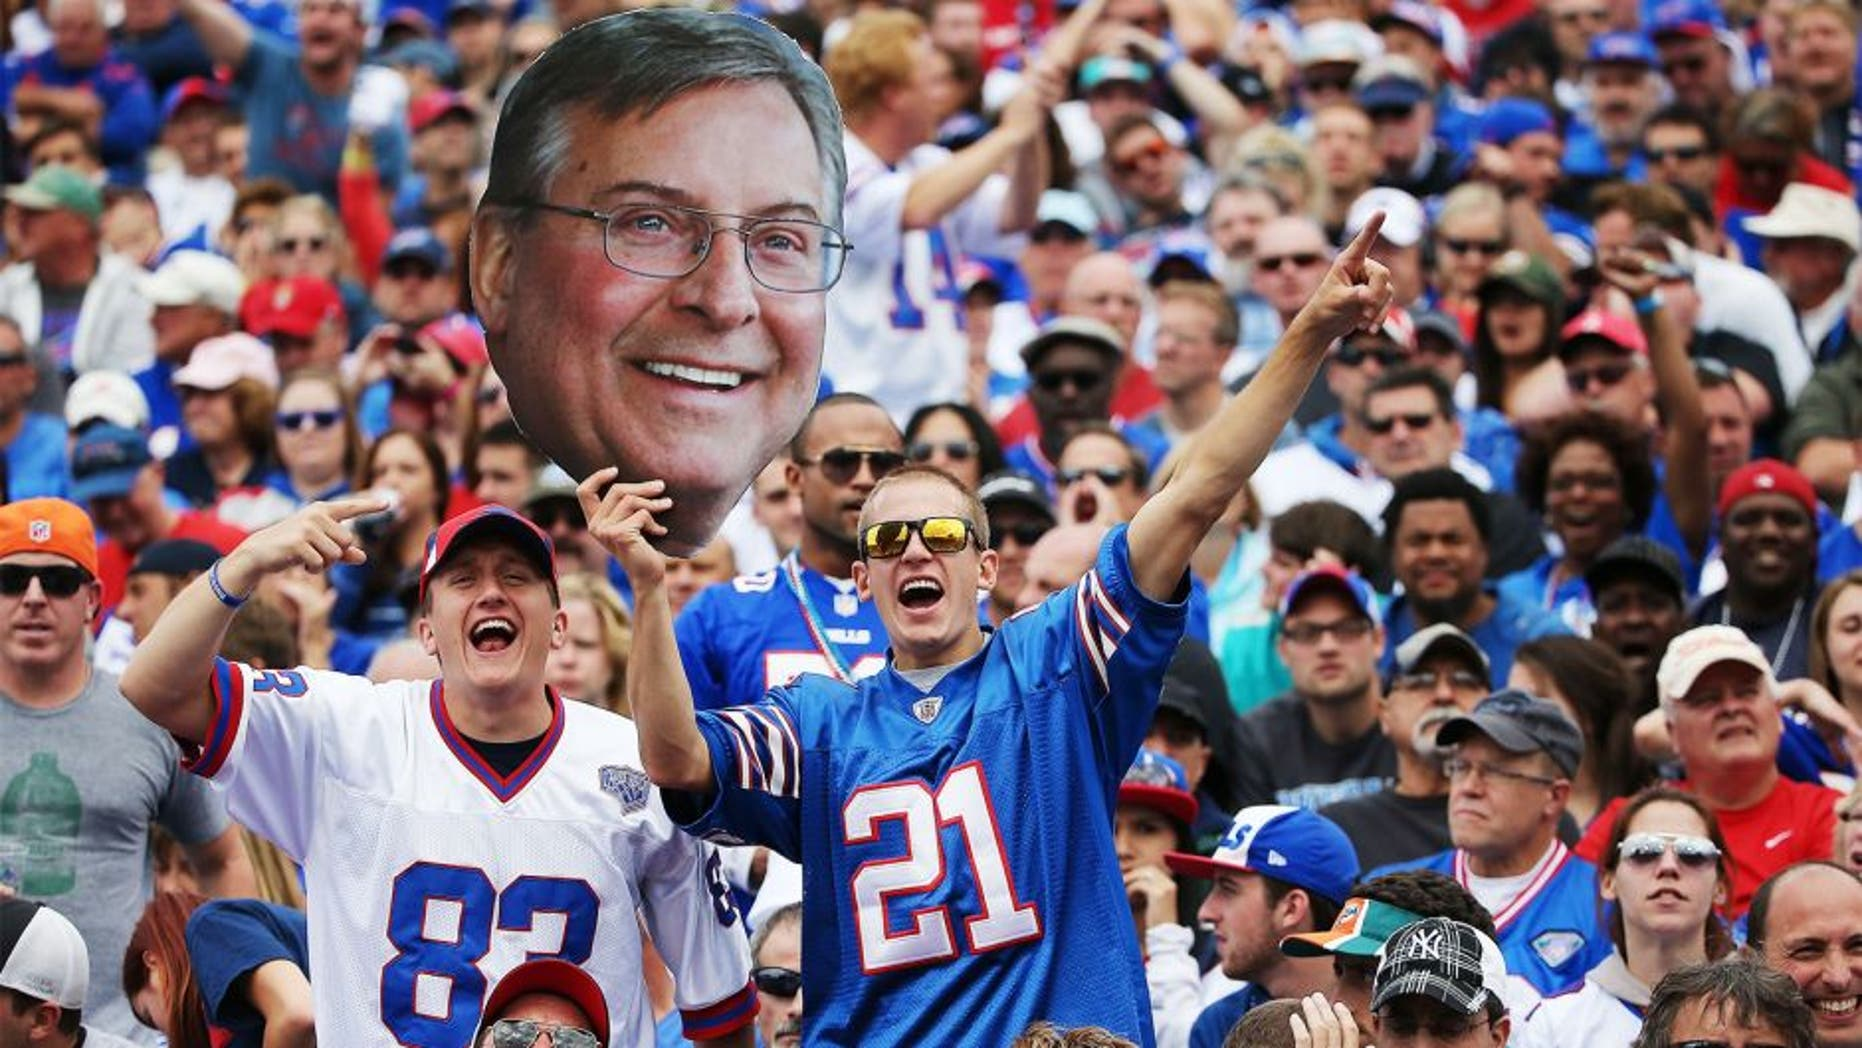 ORCHARD PARK, NY - SEPTEMBER 14: Buffalo Bills fans hold up a picture of Terry Pegula during the first half against the Miami Dolphins at Ralph Wilson Stadium on September 14, 2014 in Orchard Park, New York. (Photo by Tom Szczerbowski/Getty Images)